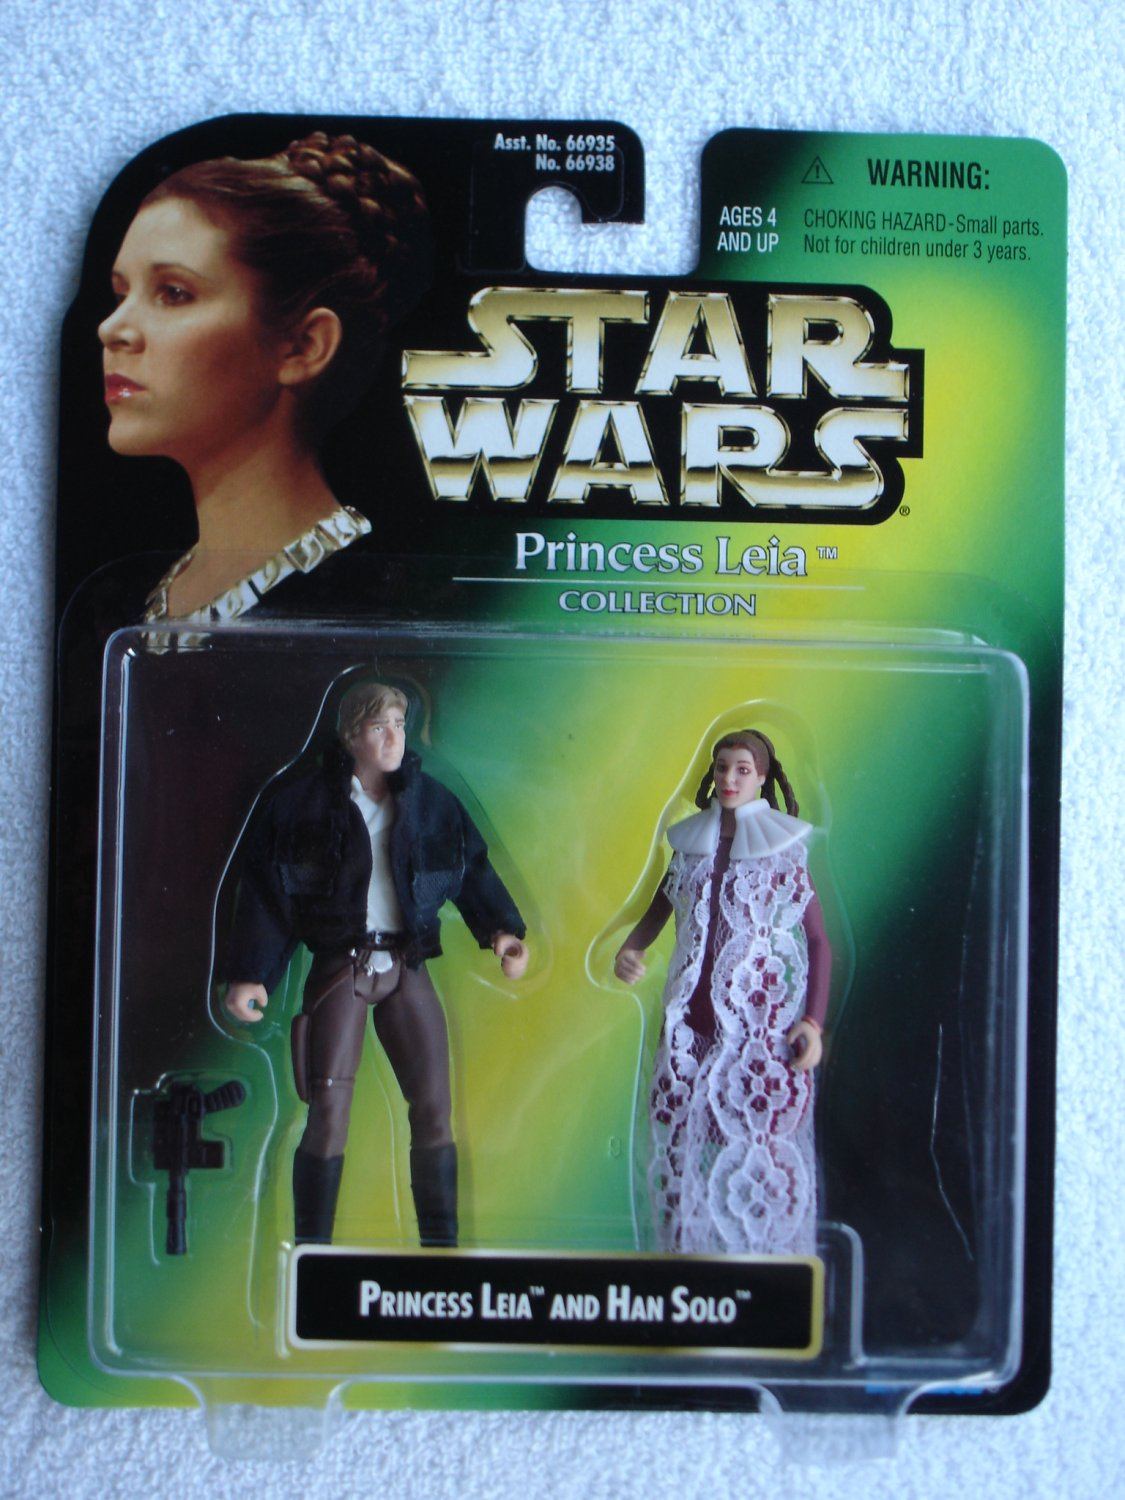 Star Wars POTF Princess Leia Collection - Han Solo